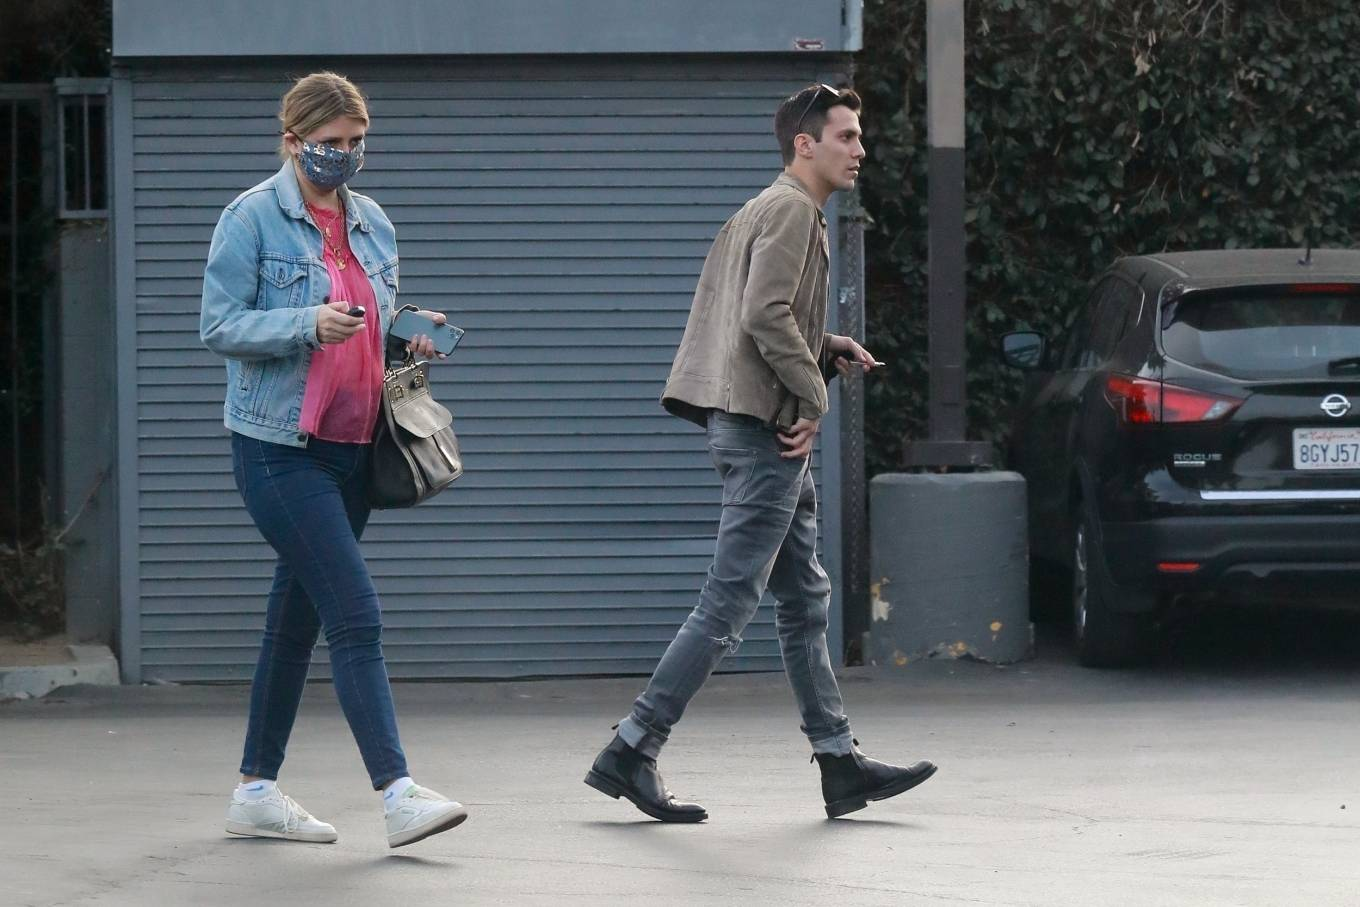 Mischa Barton 2020 : Mischa Barton – And her boyfriend Gian Marco Flamini at Tomato Pie Pizza Joint in Los Angeles -10